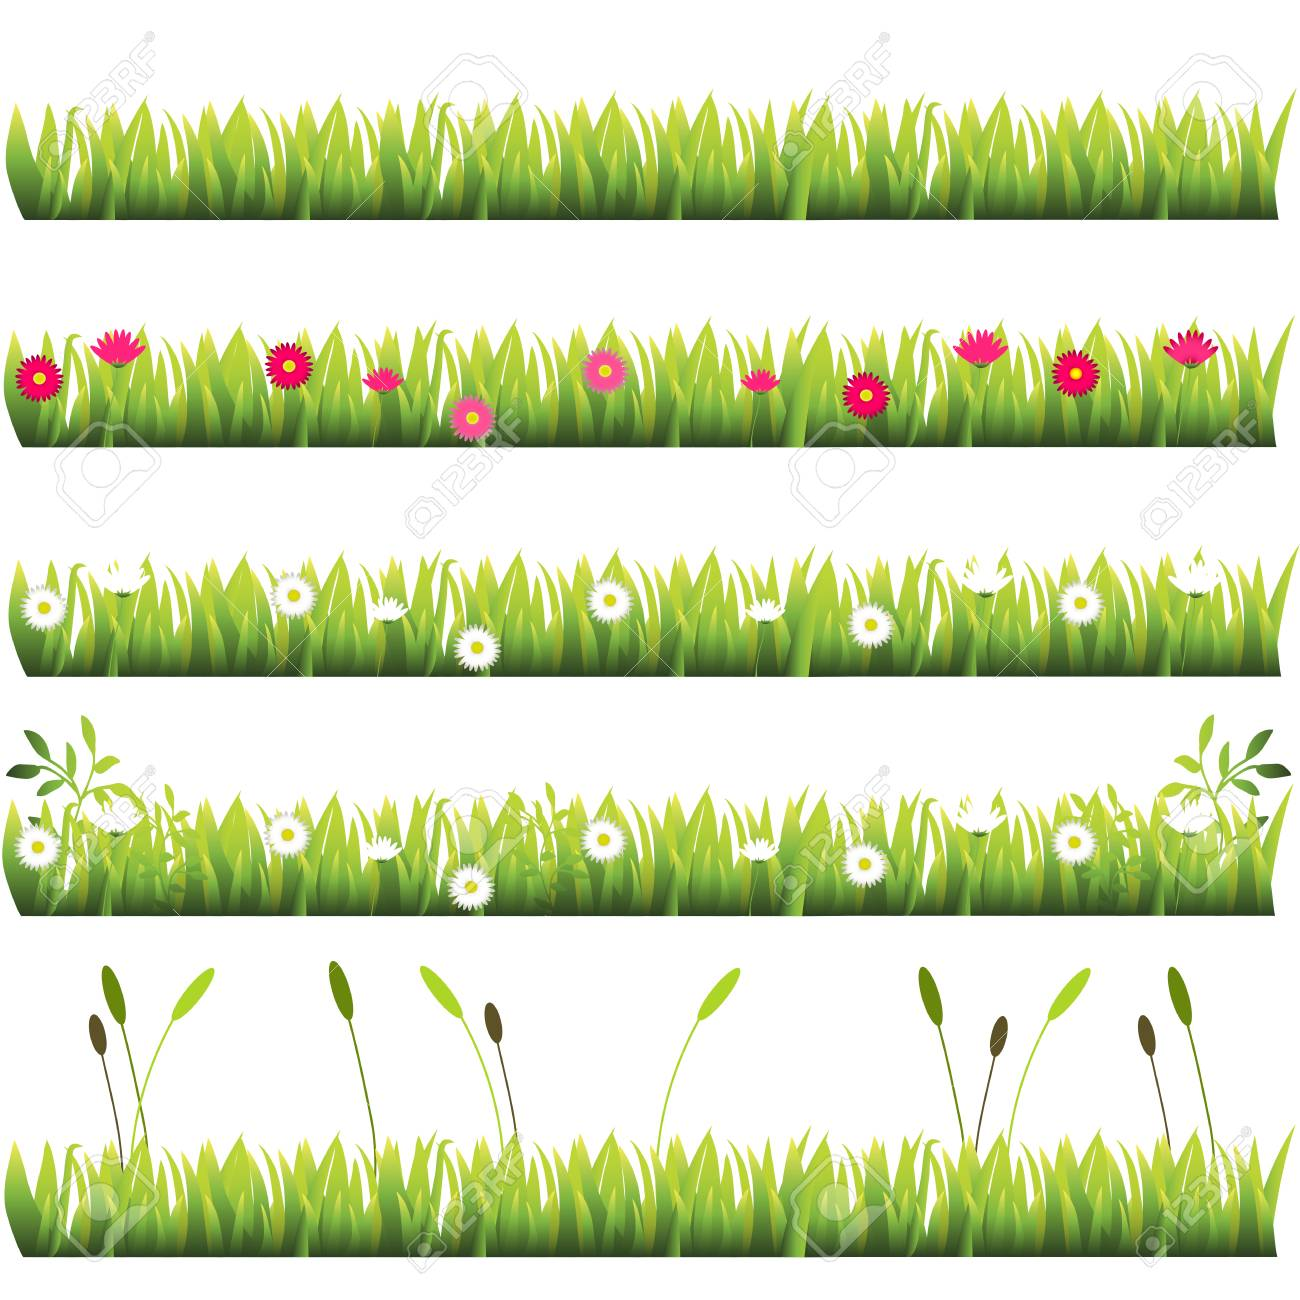 grass with flowers royalty free cliparts vectors and stock rh 123rf com free vector grass brush free vector grass texture